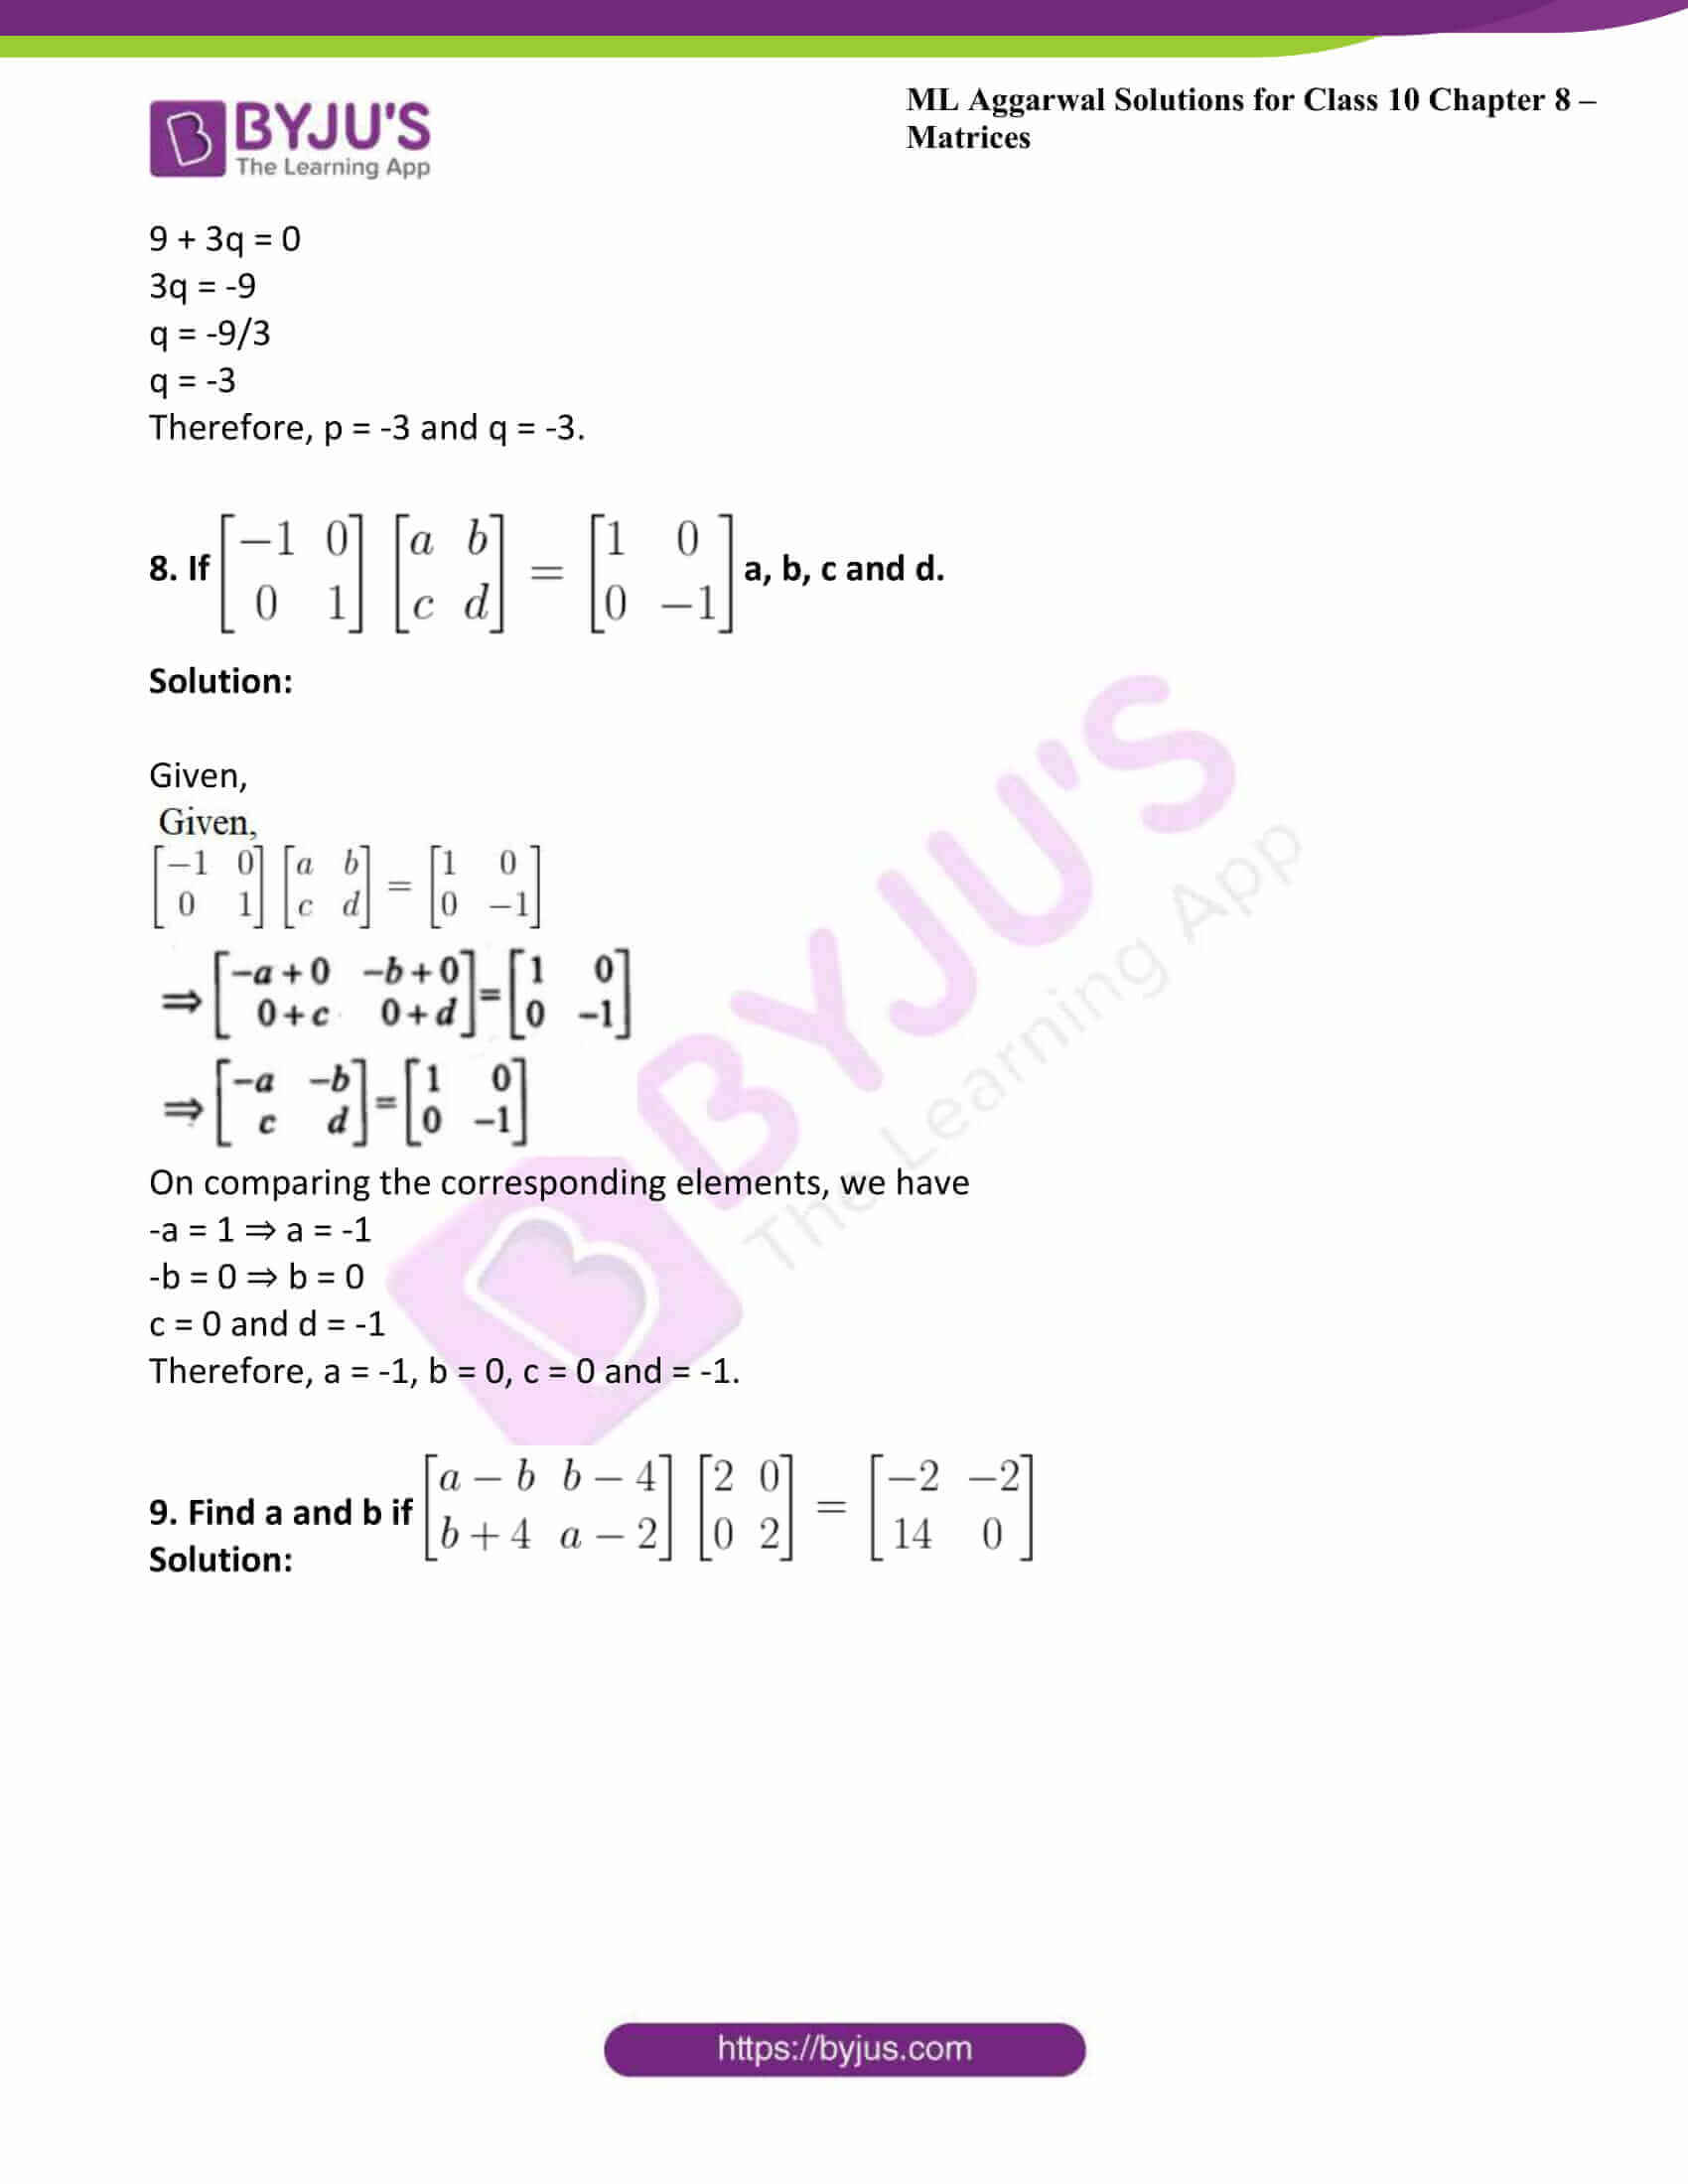 ml aggarwal solutions class 10 maths chapter 8 40